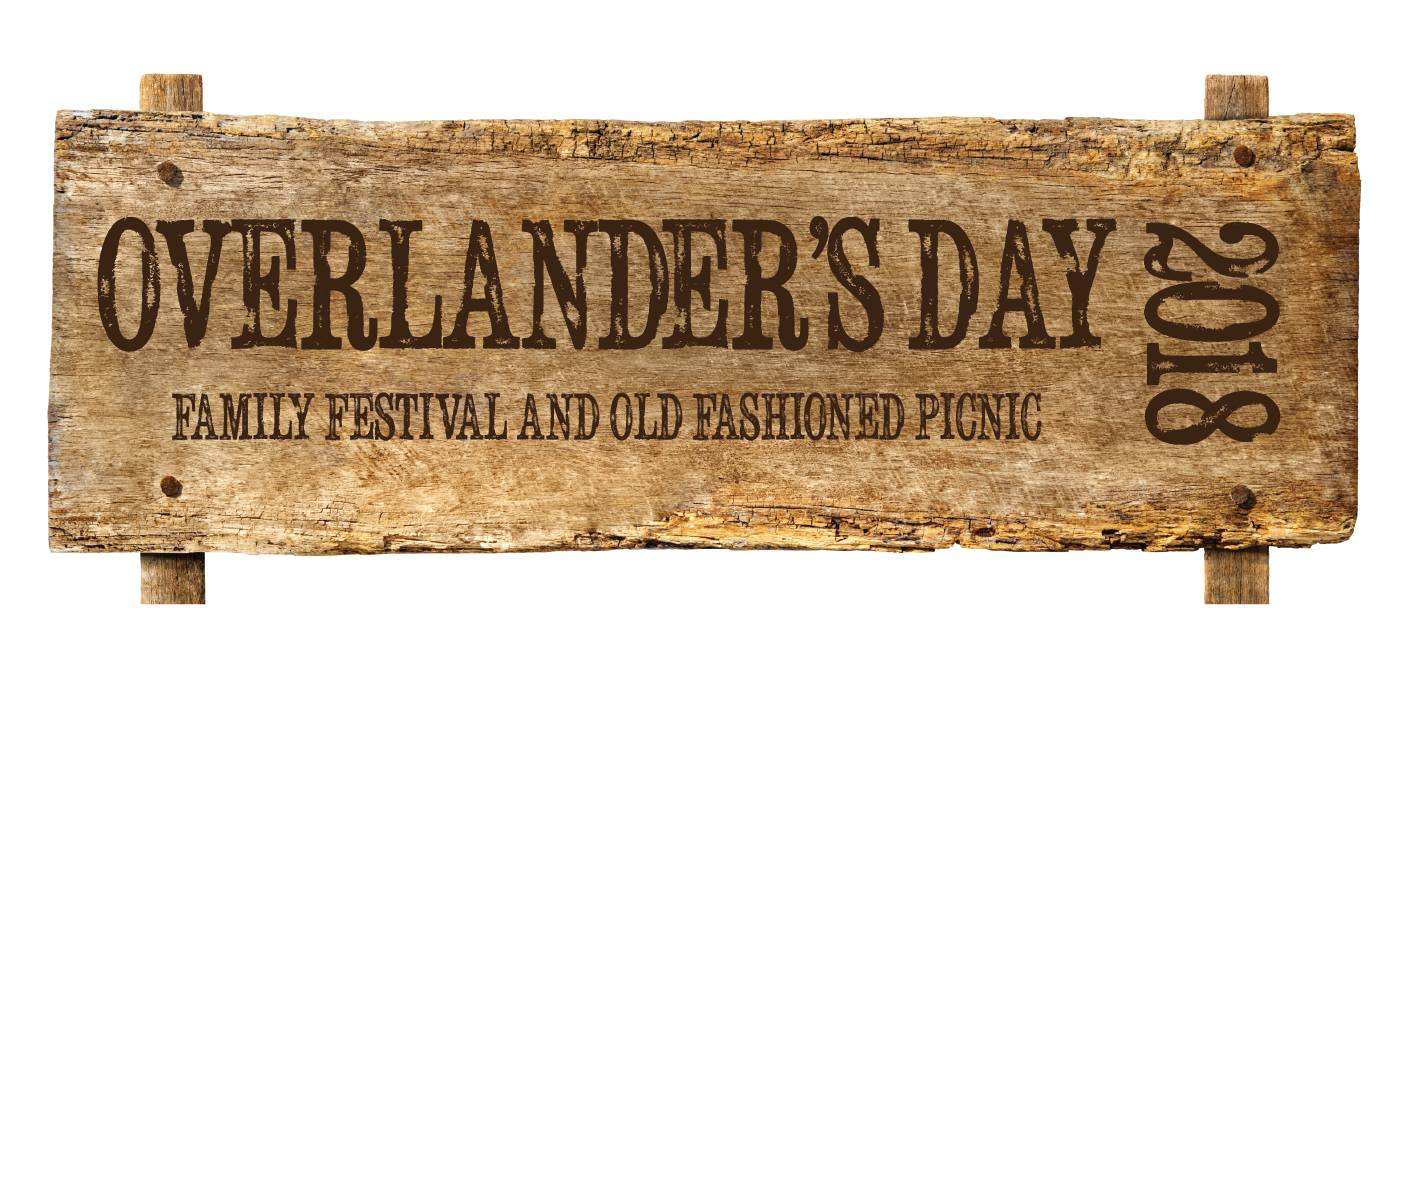 Overlanders Day will be held in Kamloops this year after all